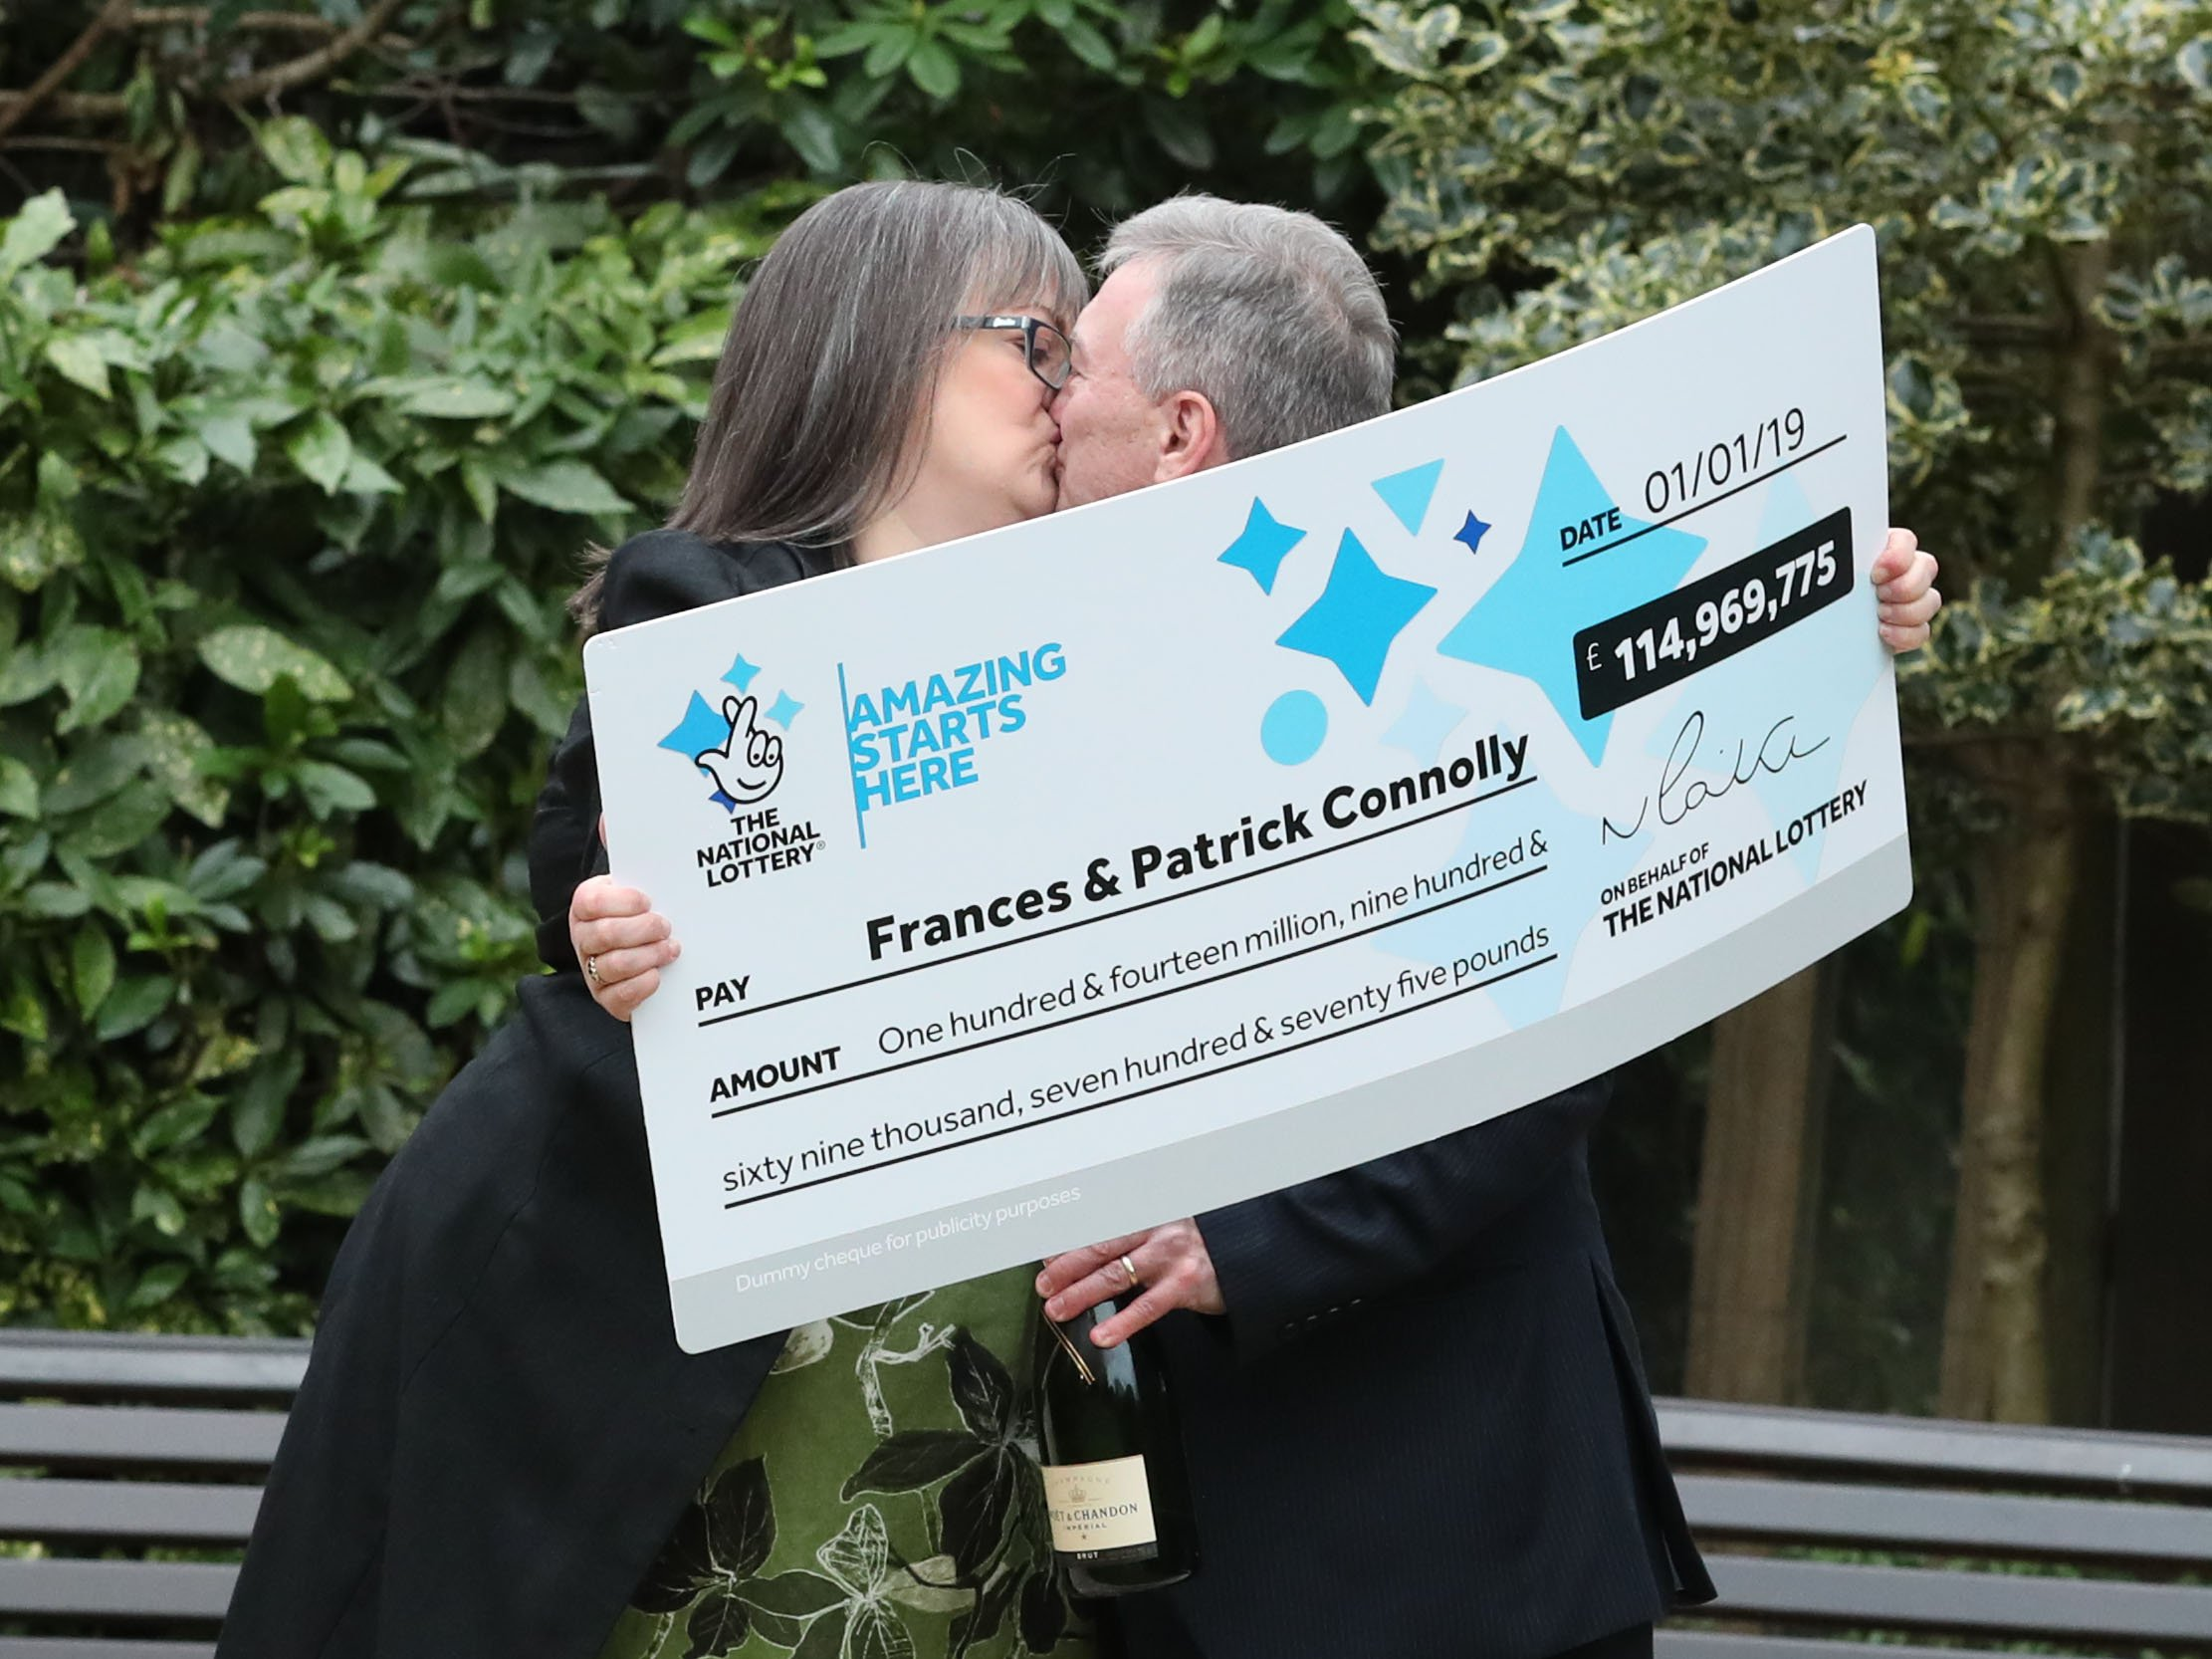 EuroMillions lottery winners named as Frances and Patrick Connolly